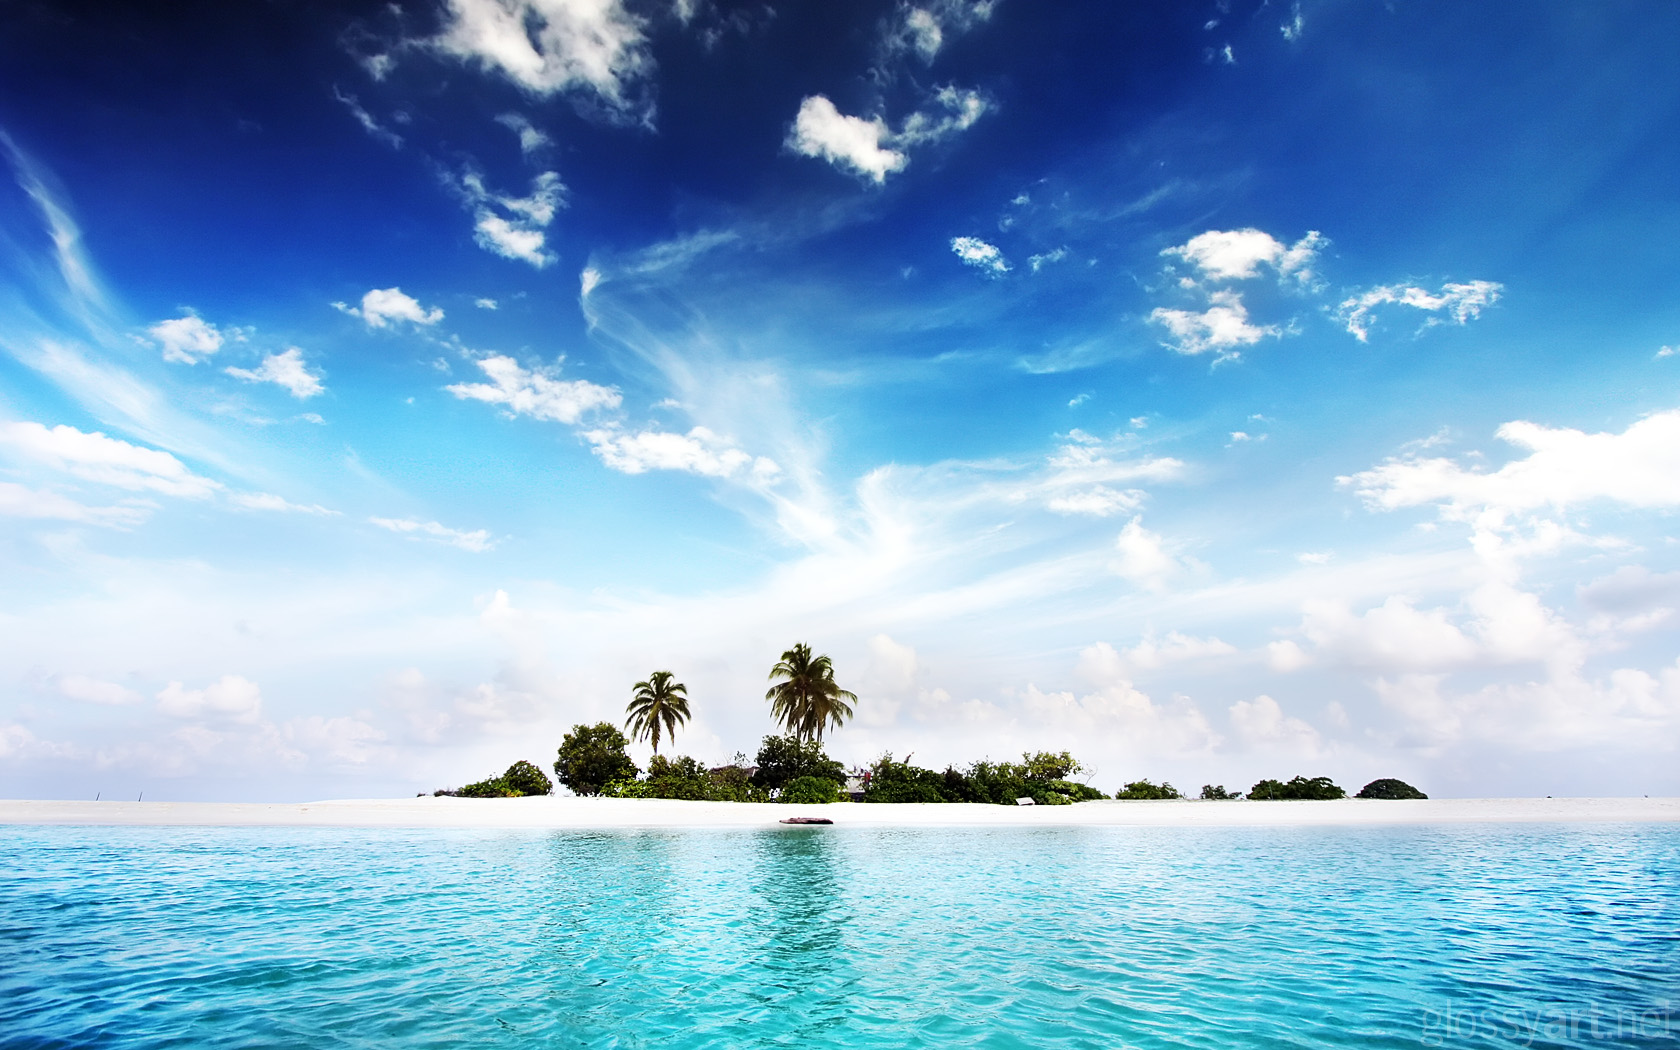 Island HD Wallpaper Becautiful Dream Island Wallpapers for Desktop 1680x1050